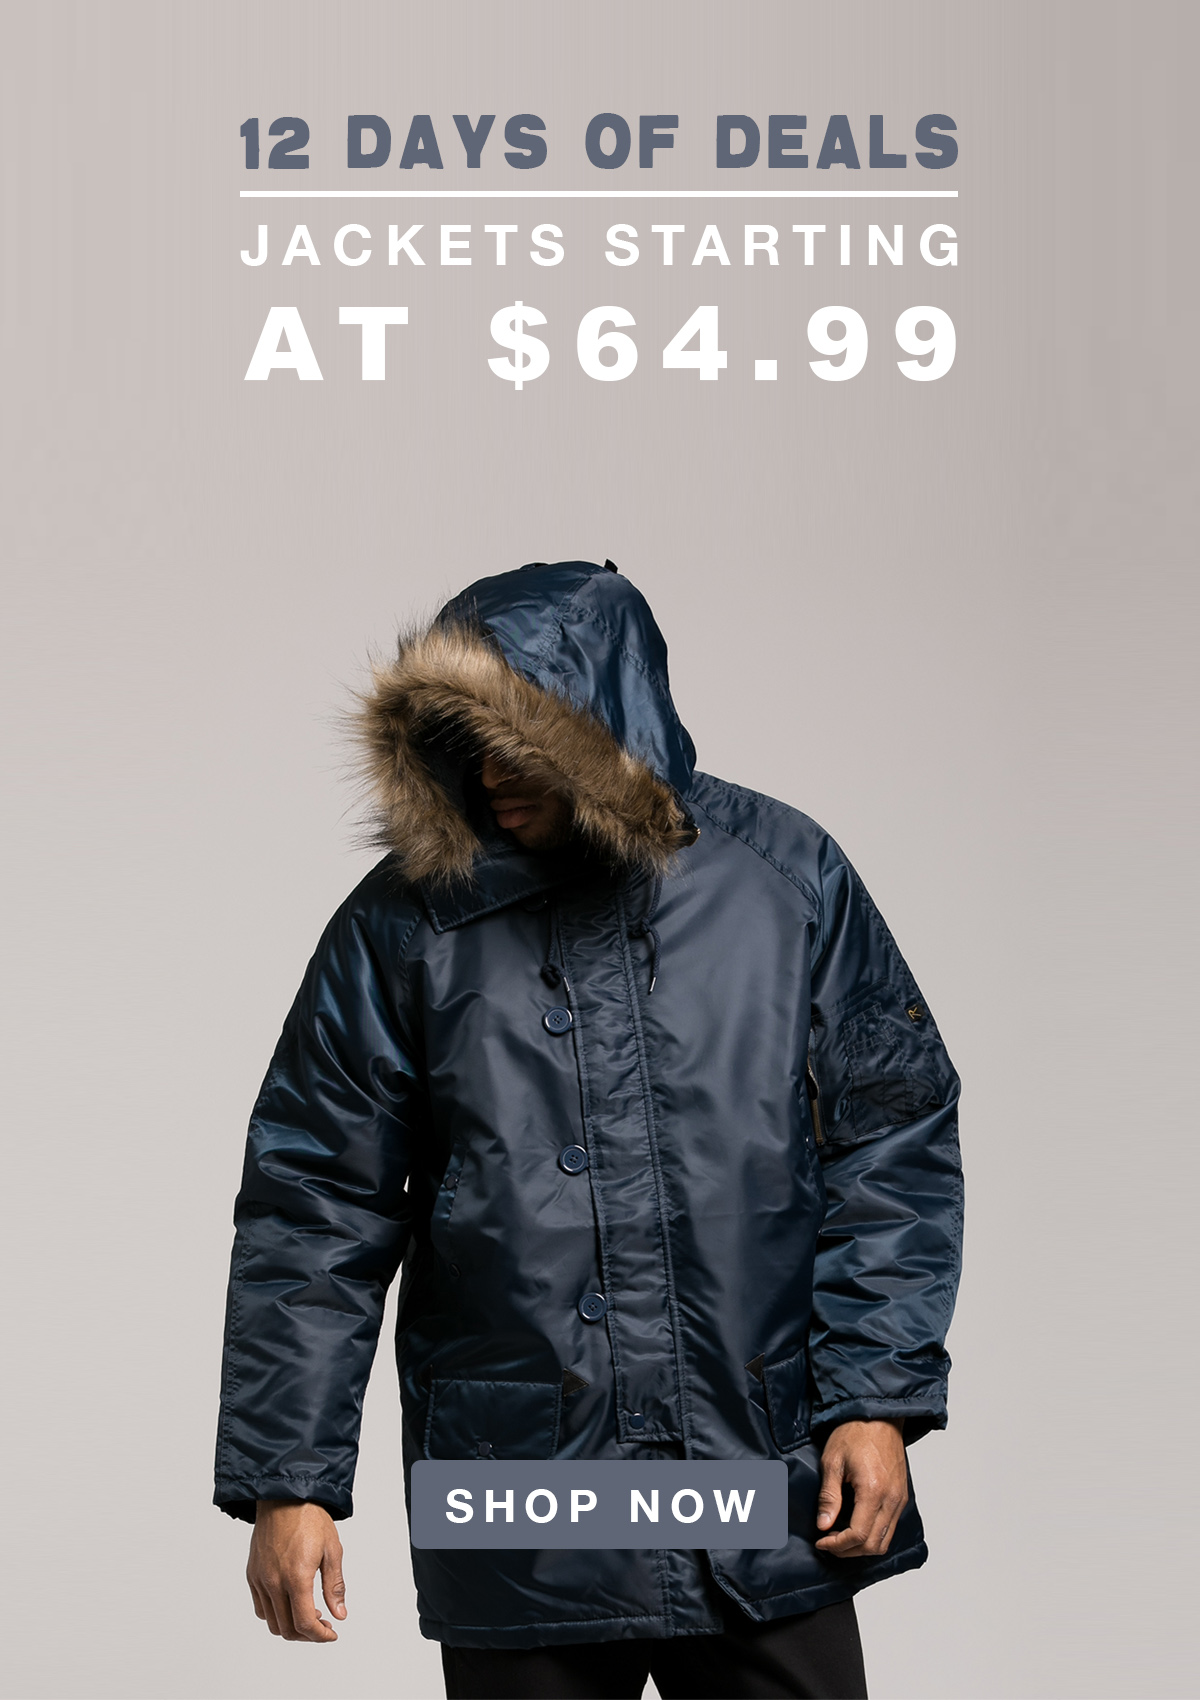 Day 2 of Deals - Jackets Starting at 64.99